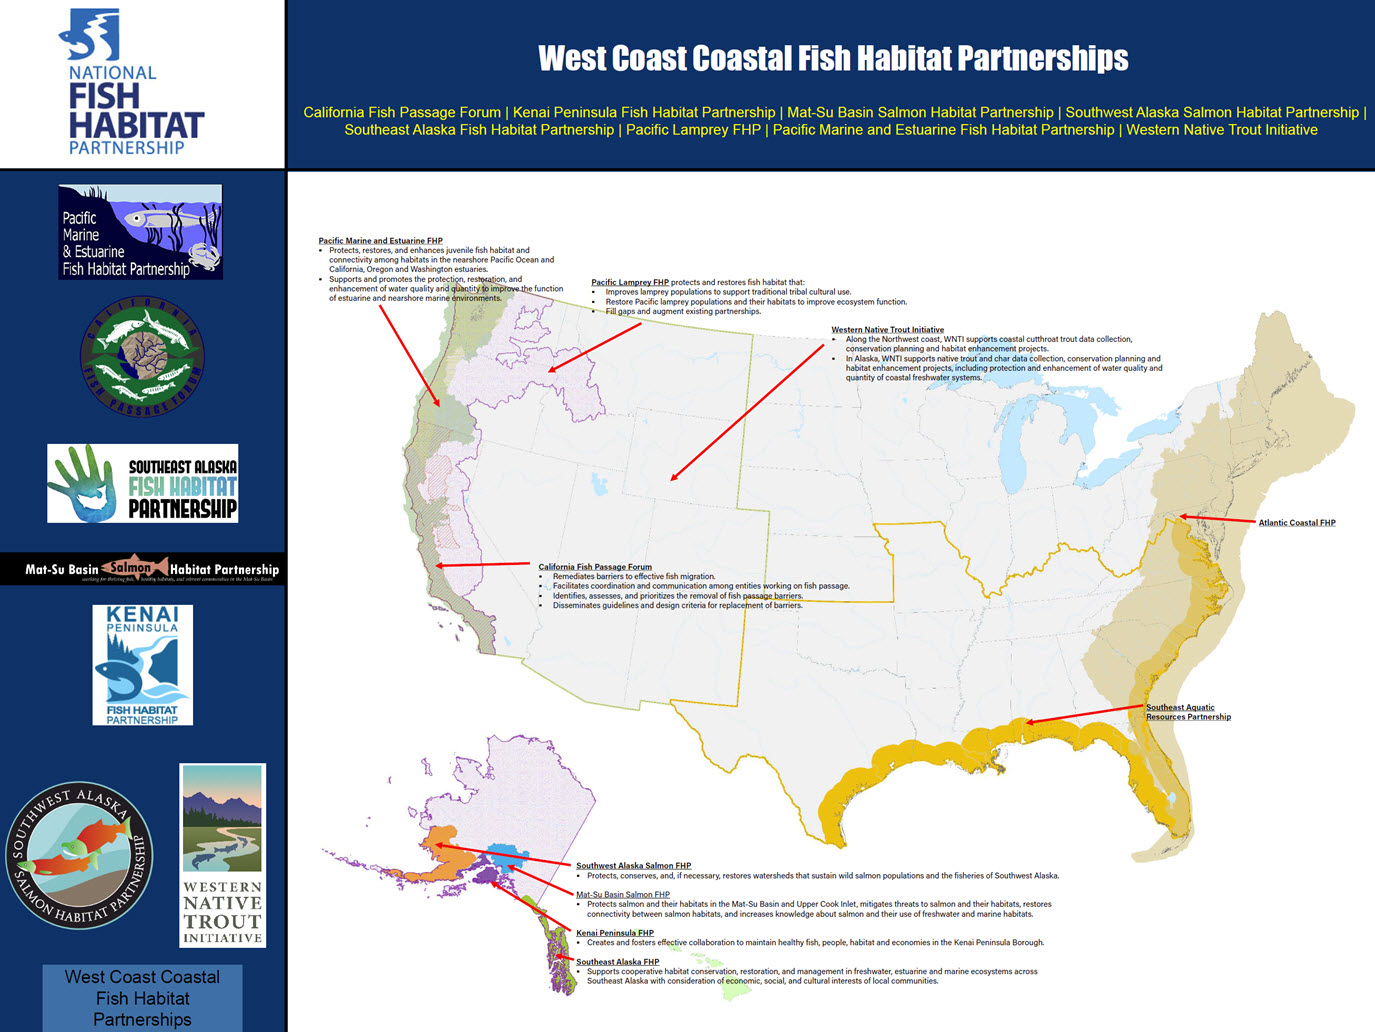 West Coast Coastal Fish Habitat Partnerships